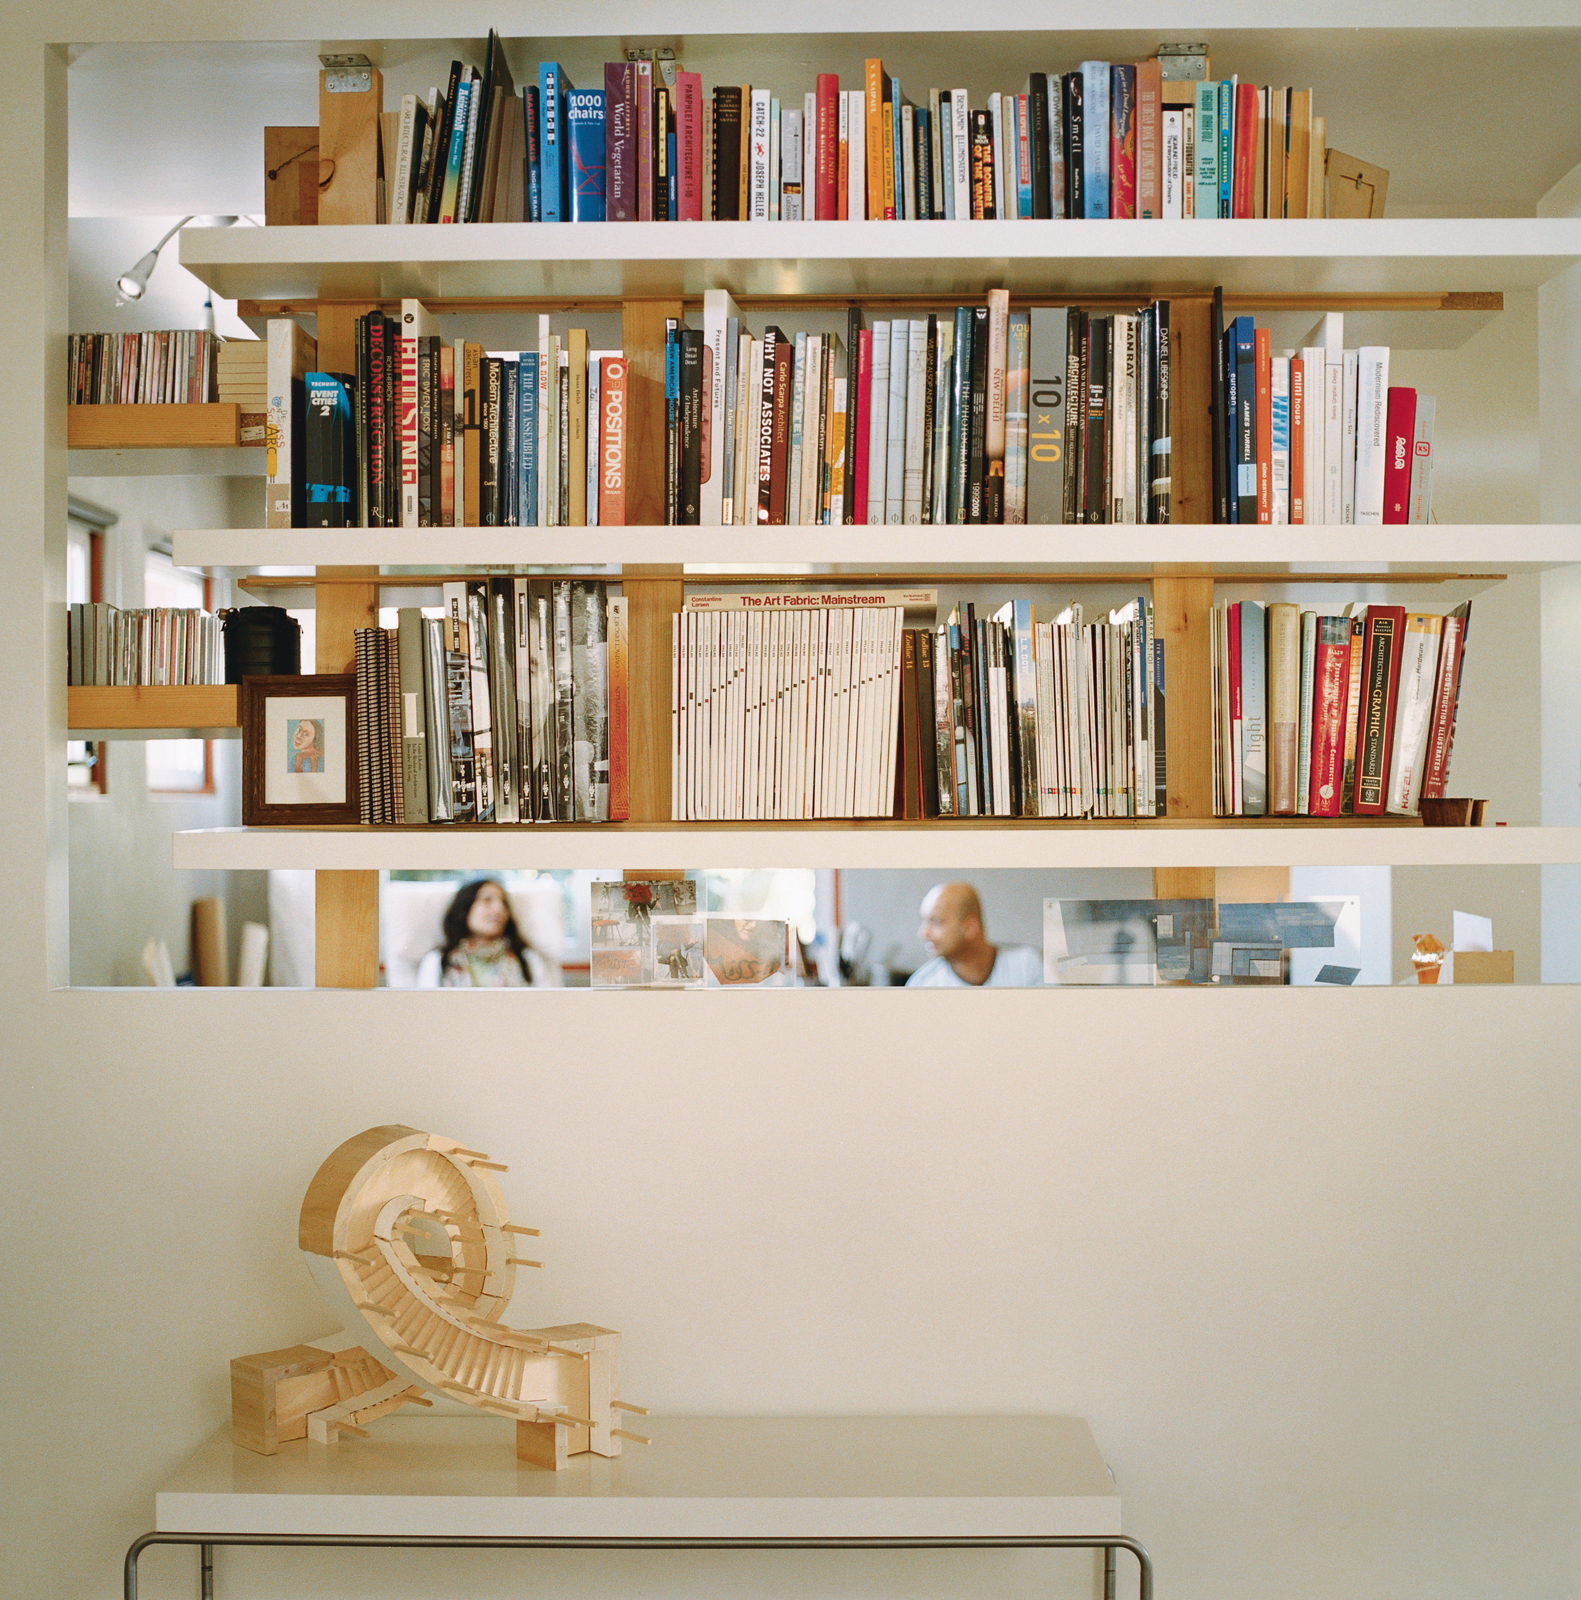 pande misra house bookshelf sculpture